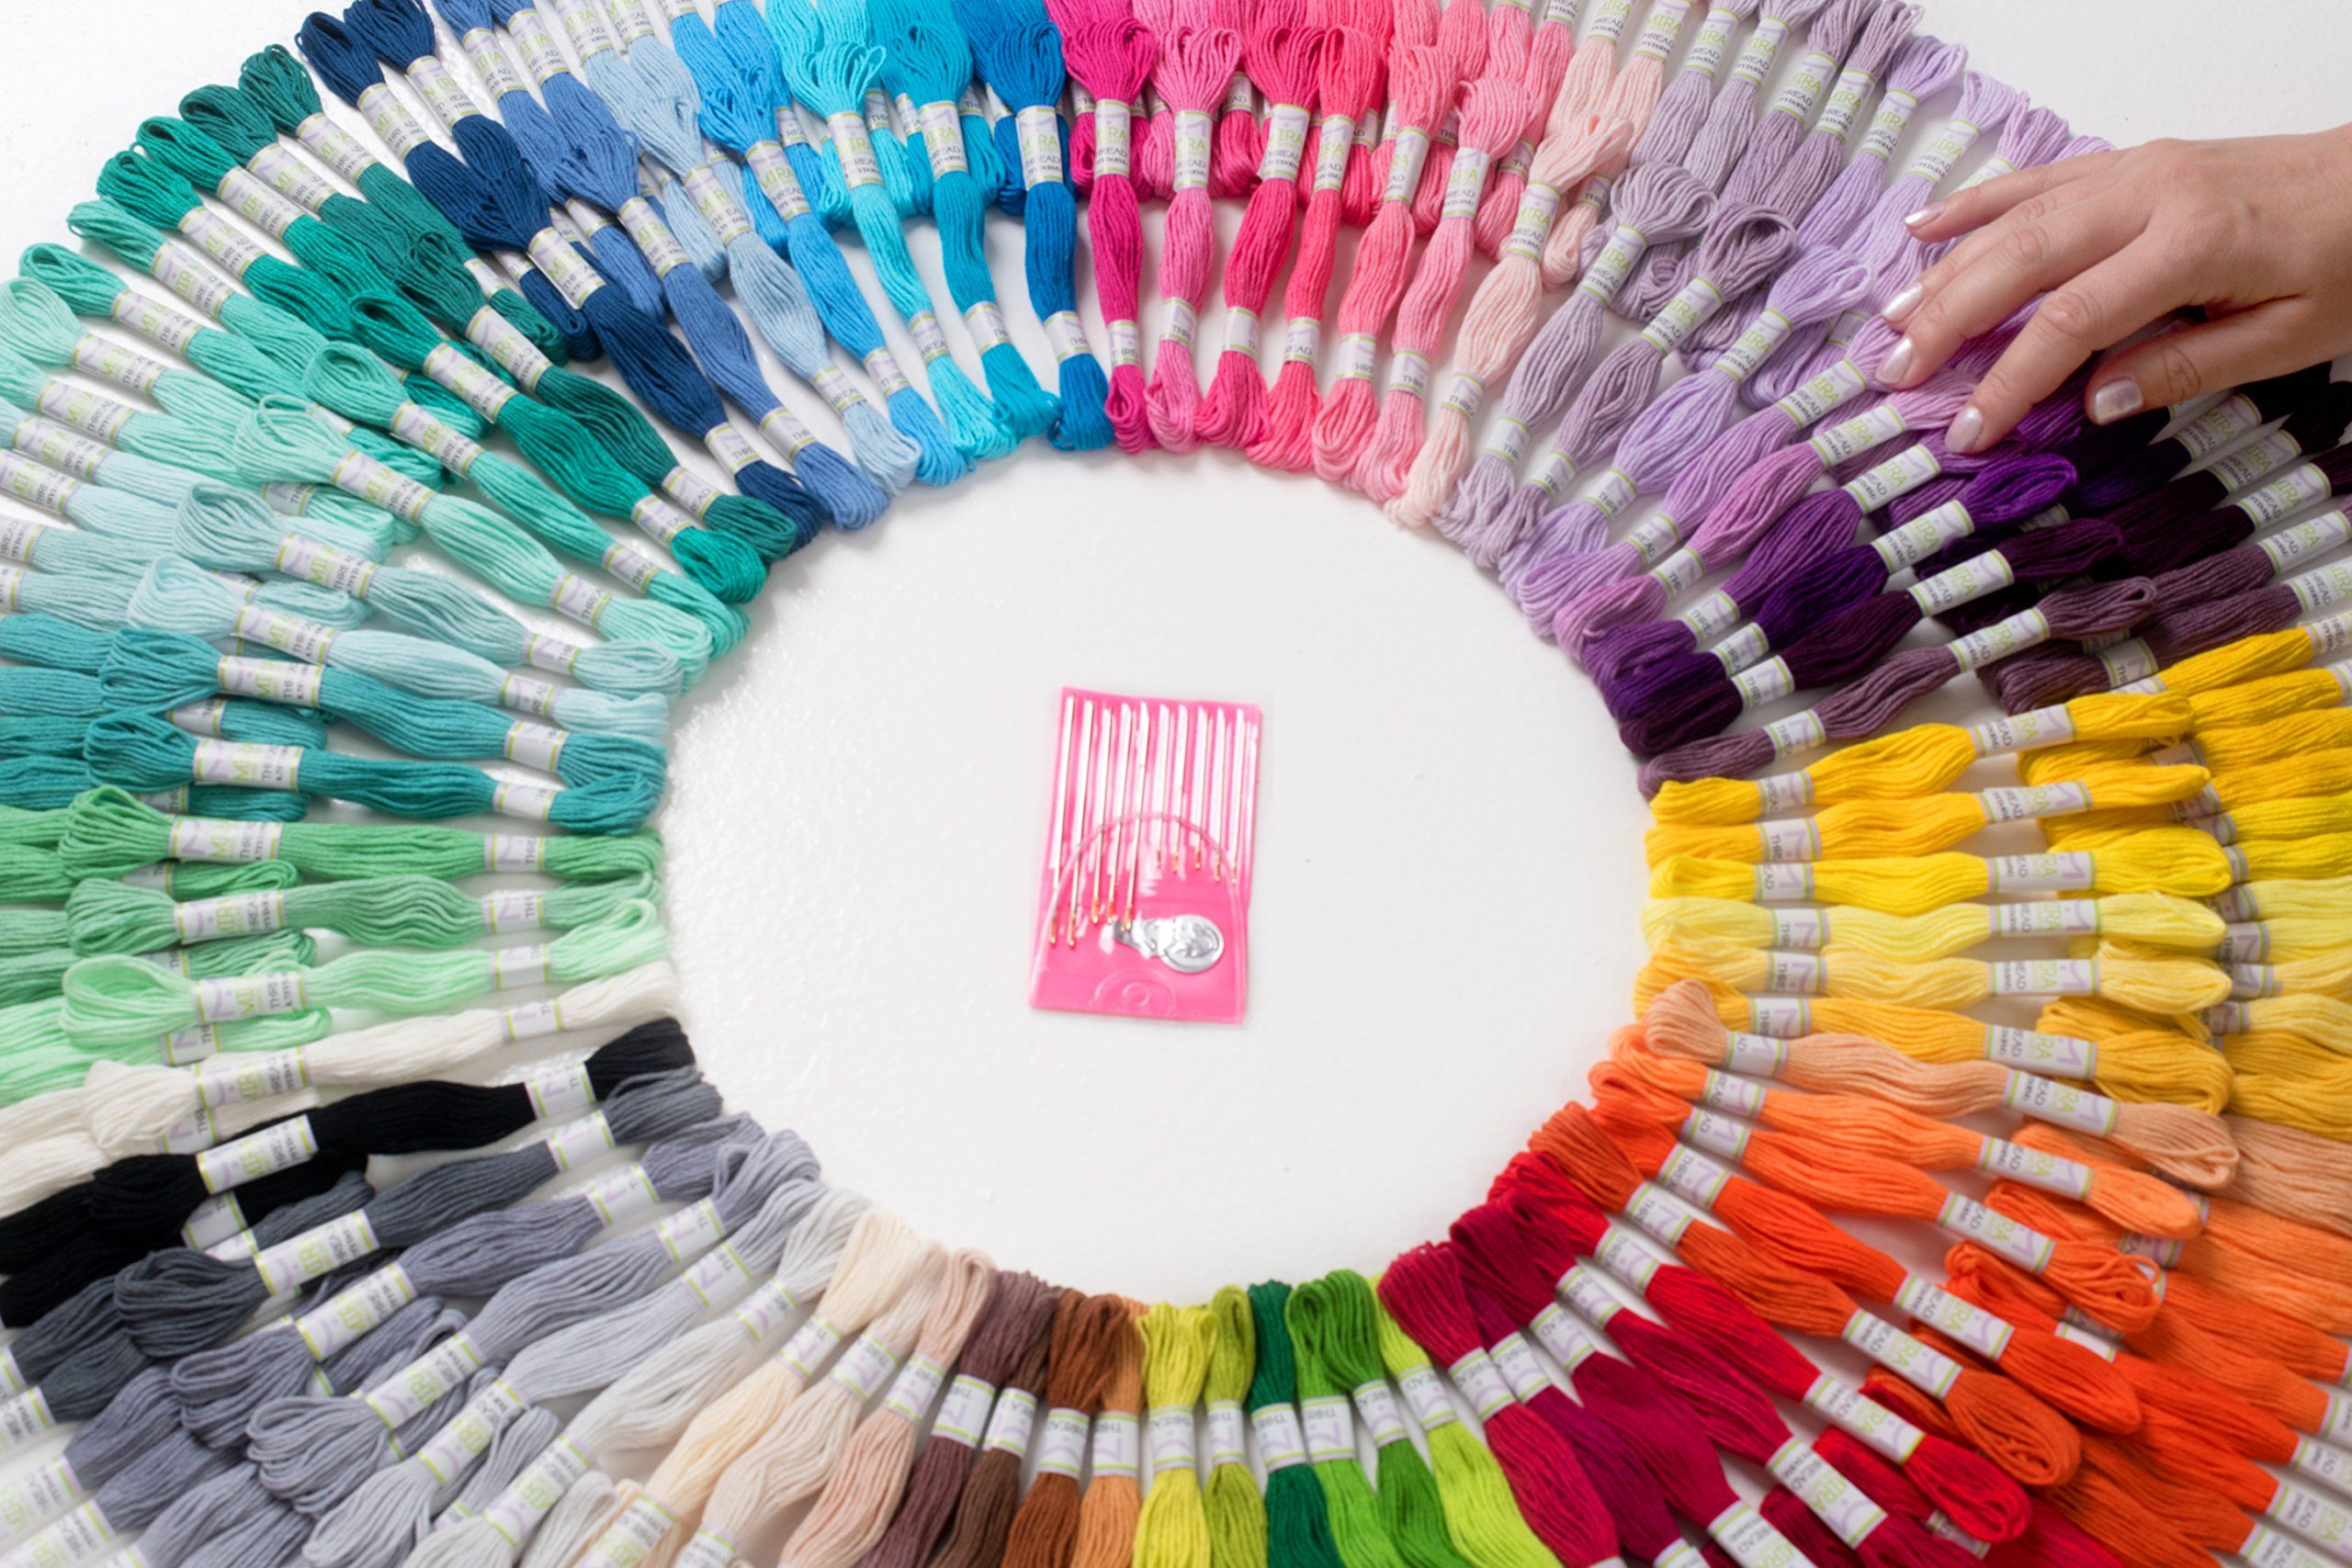 DMC Floss Colors Mira HandCrafts 210 Embroidery Floss Skeins Sewing Thread Mega Floss Pack Friendship Bracelet String Free Set of Embroidery Needles